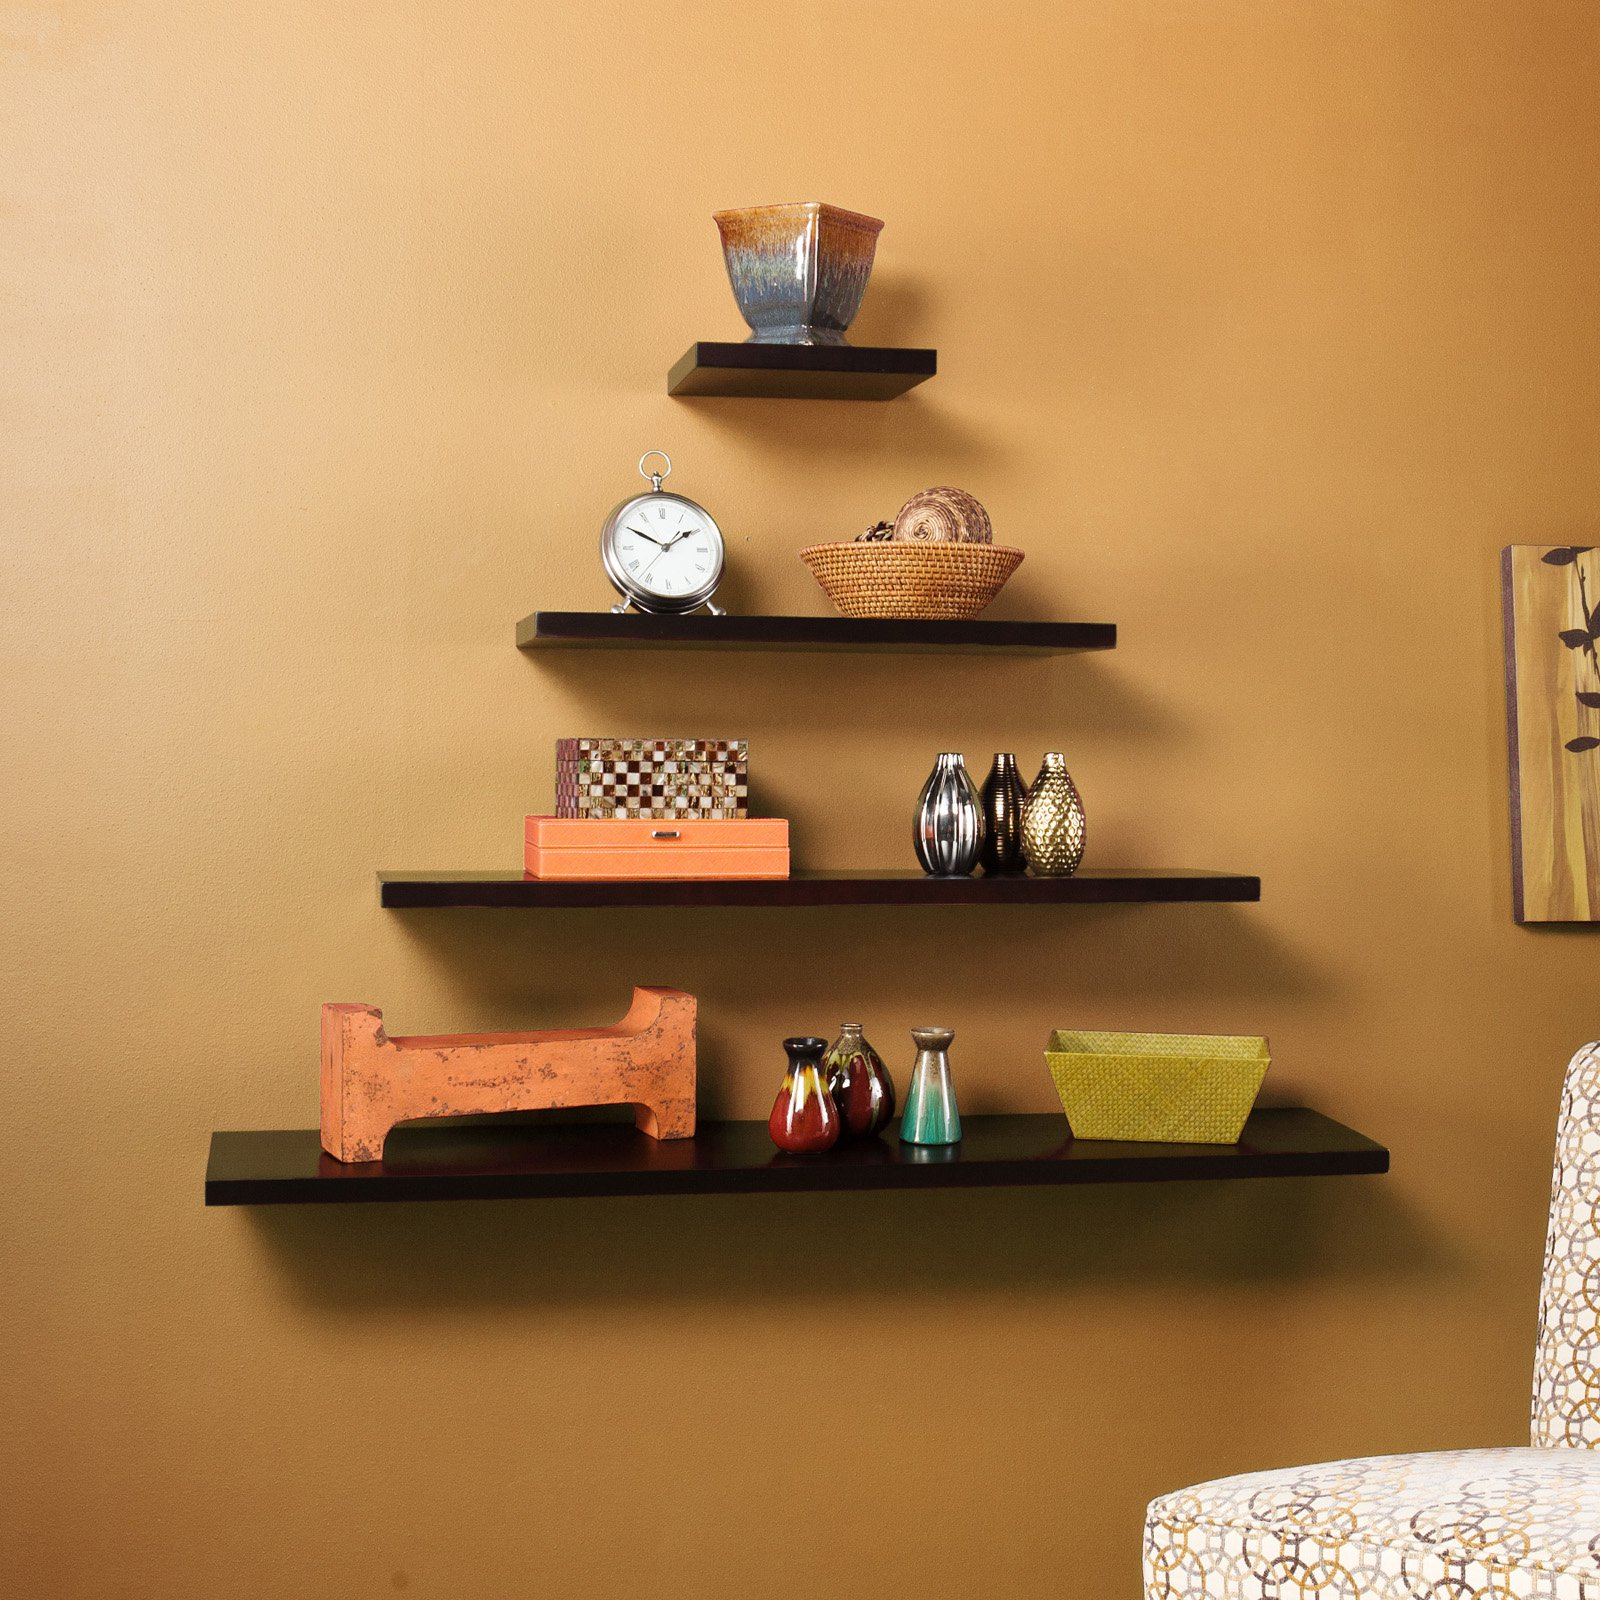 Denver 10 x 24 floating shelf espresso walmart amipublicfo Gallery